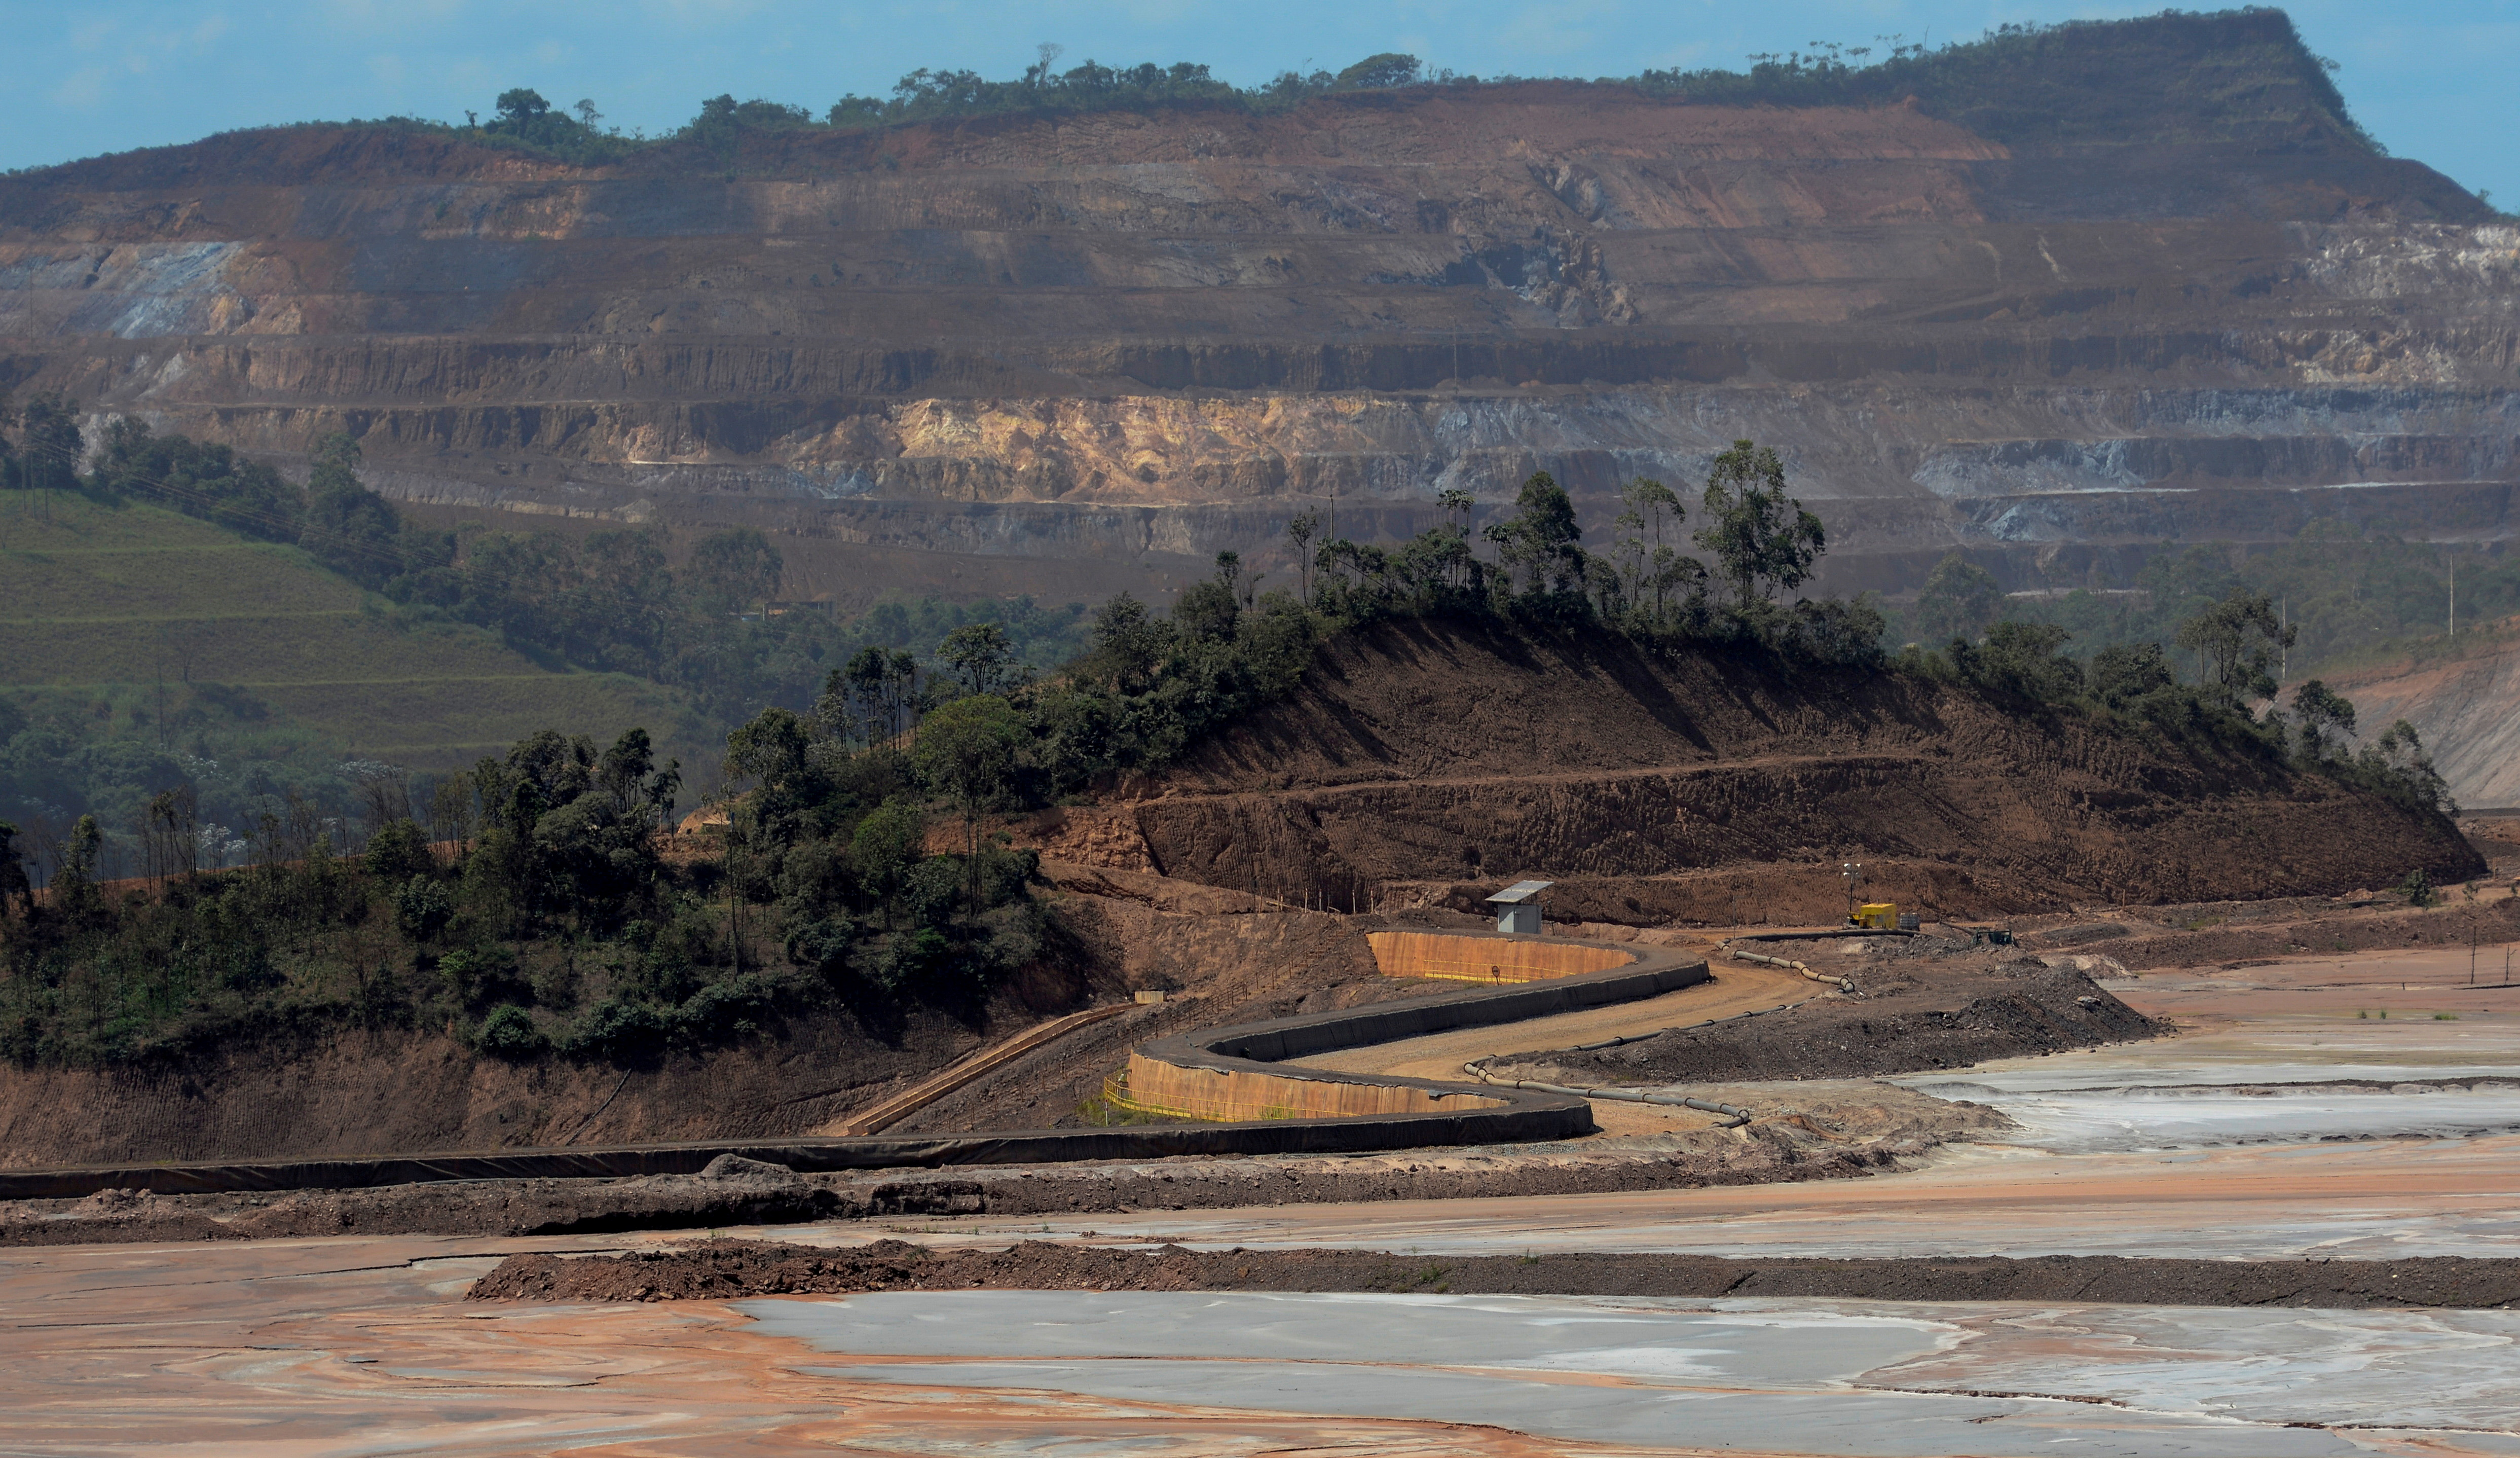 A view of the Samarco mine, owned by Vale SA and BHP Billiton Ltd, in Mariana, Brazil, April 12, 2016. REUTERS/Washington Alves/File Photo